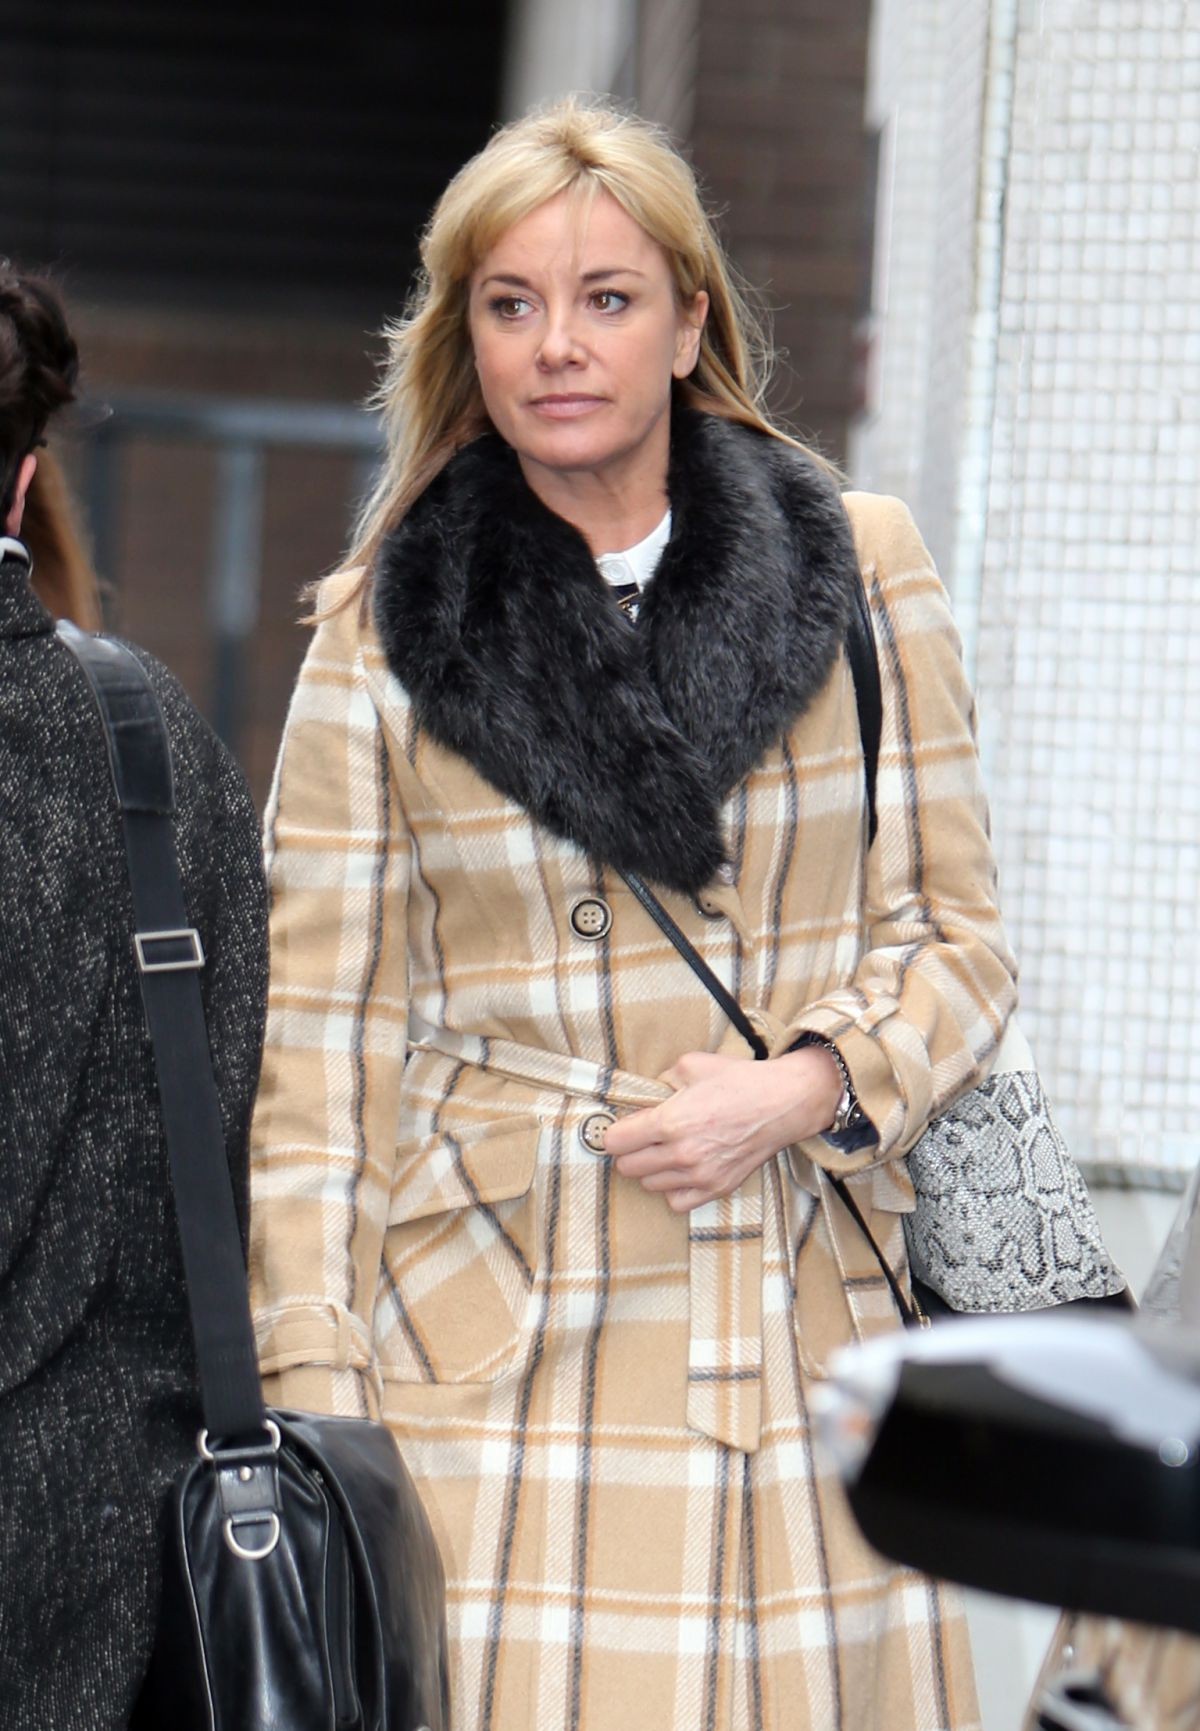 TAMZIN OUTHWAITE Leaves ITV Studios in London 1602